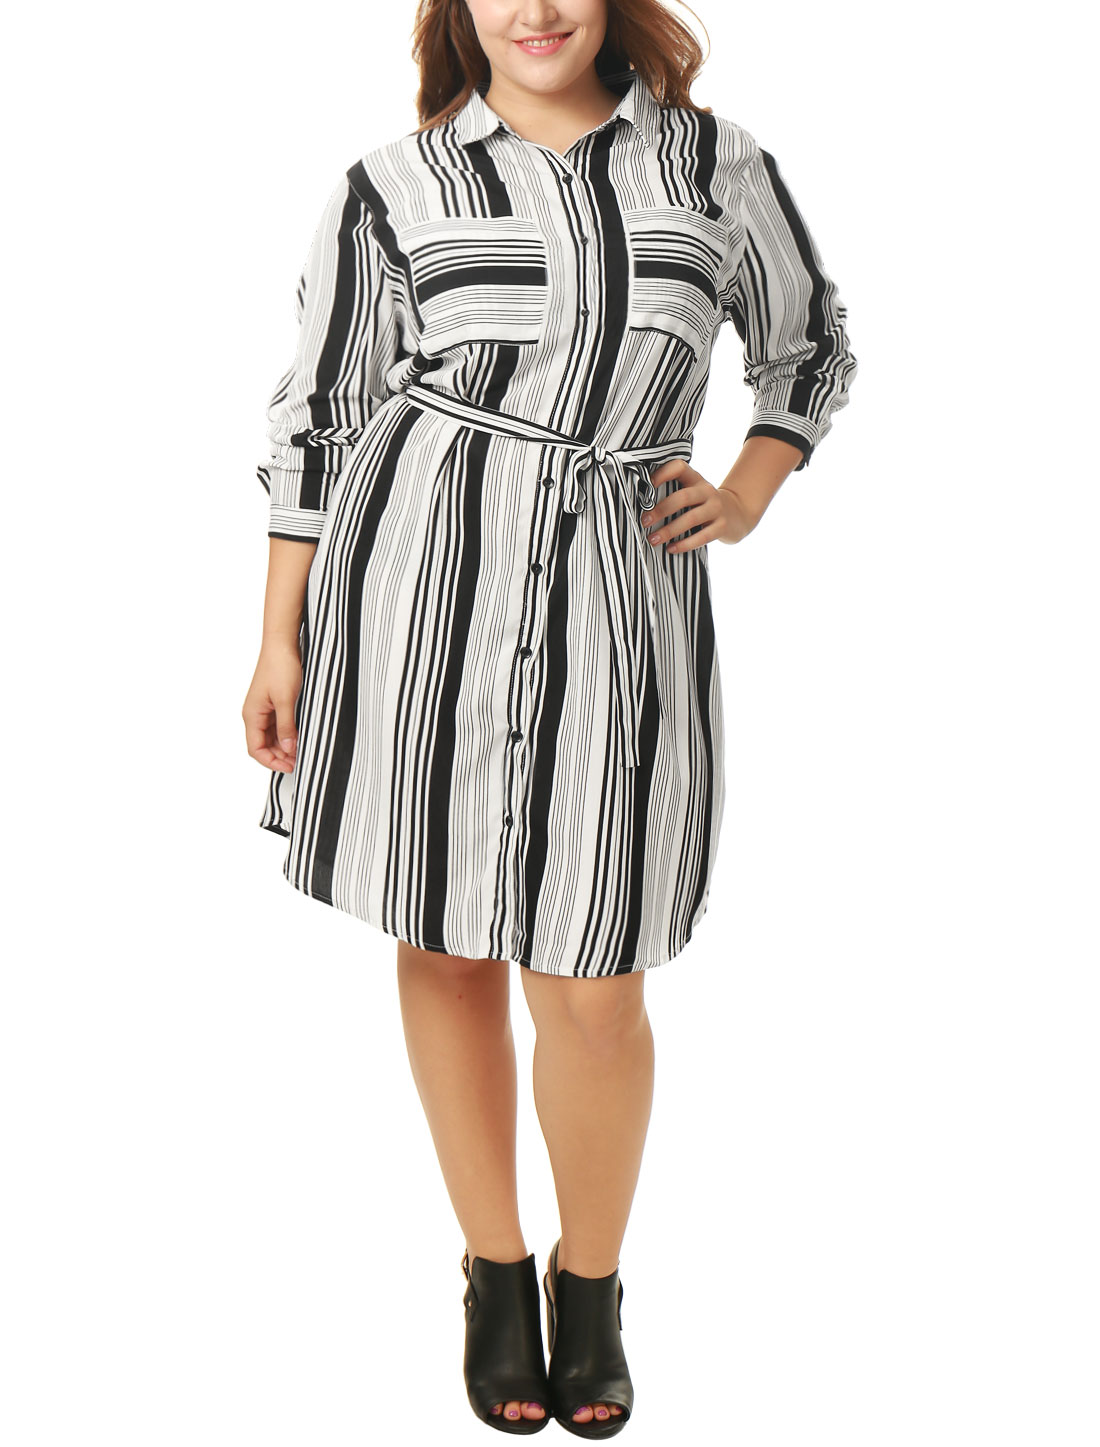 Women Plus Size Striped Tie Waist Long Sleeves Shirt Dress Black White 1X